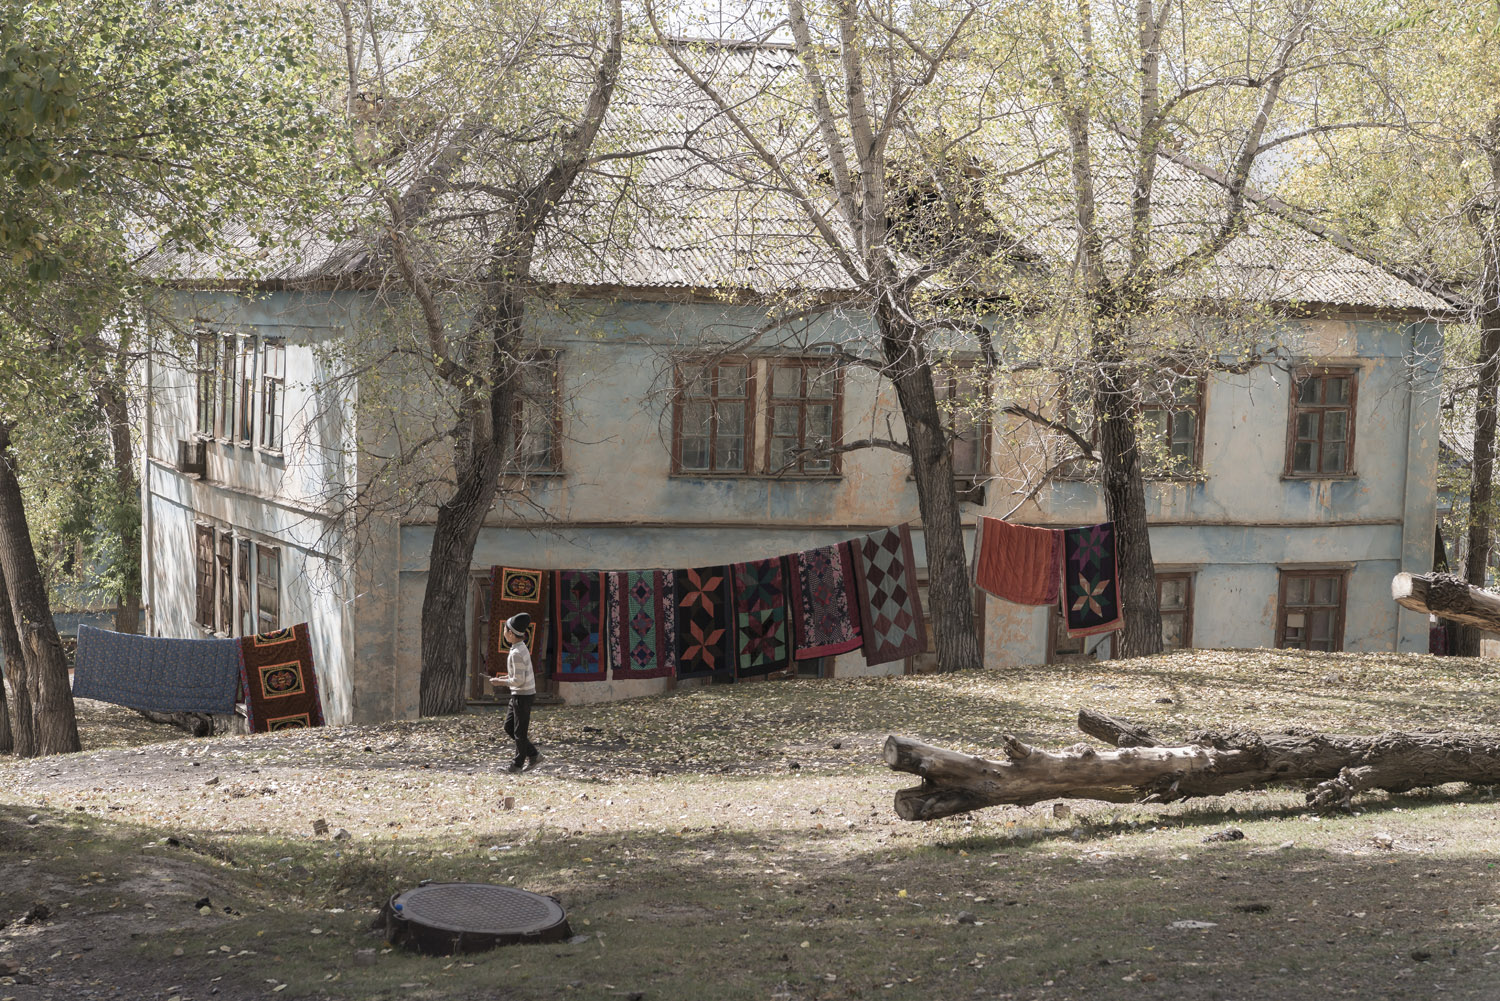 min-kush-soviet-uranium-mining-town-industrial-Russia-Kyrgyzstan-ruins-soviet-sign-jo-kearney-photos-video-photography-child-washing-blankets-drying.jpg